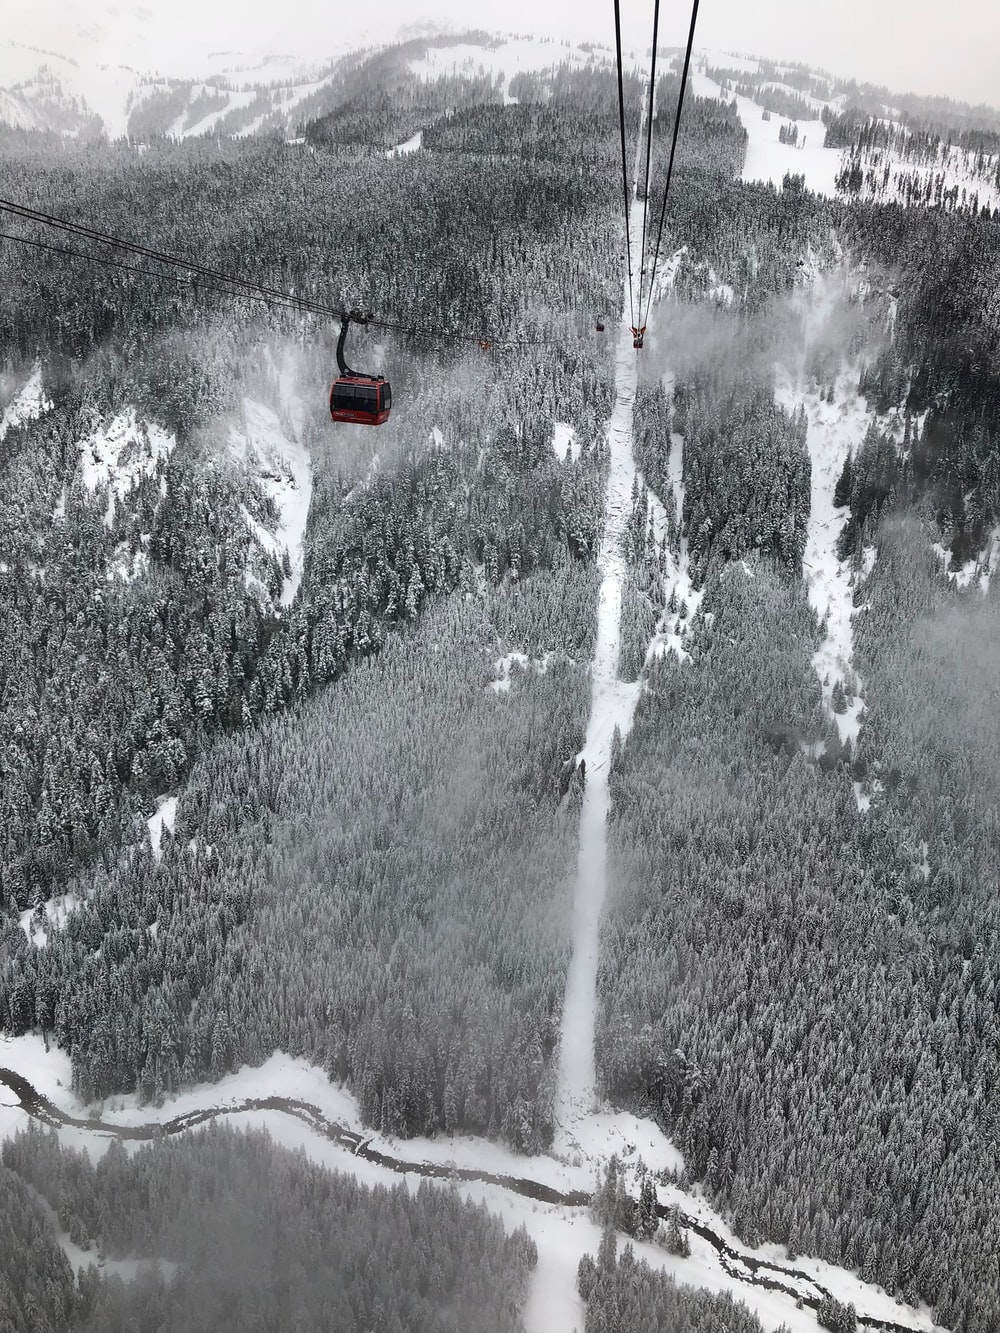 black zip line in aerial view photography